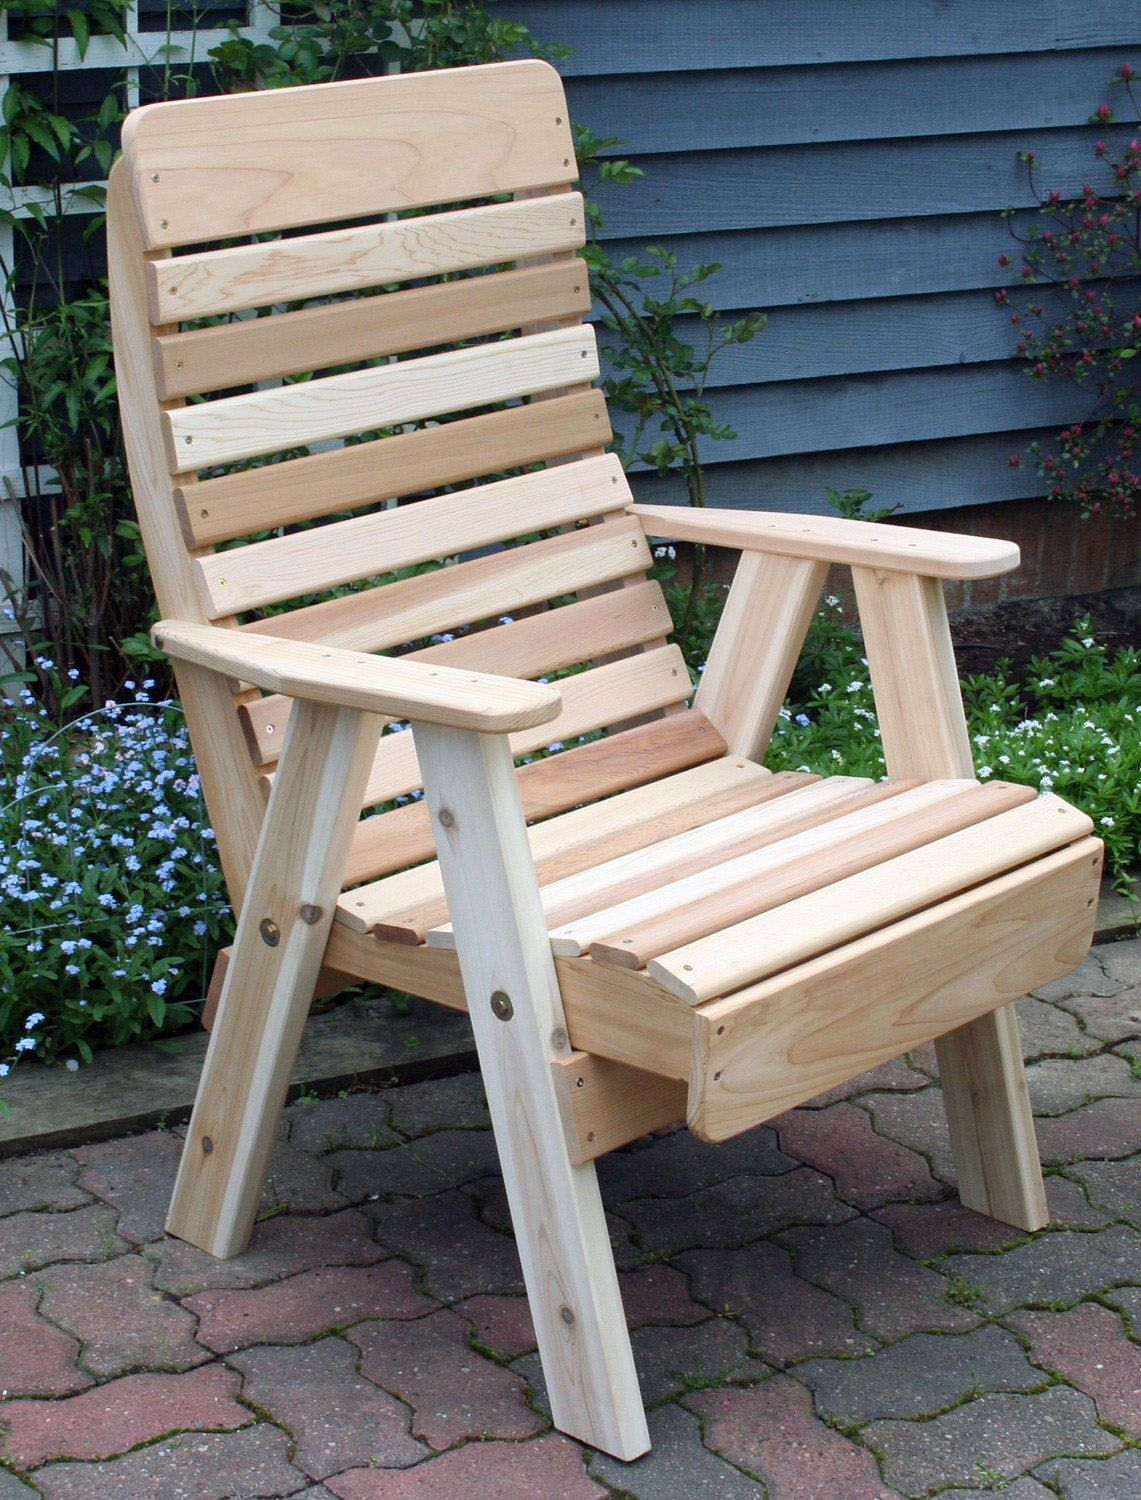 Repurposed Exterior Furnishings Projects To Smarten Up